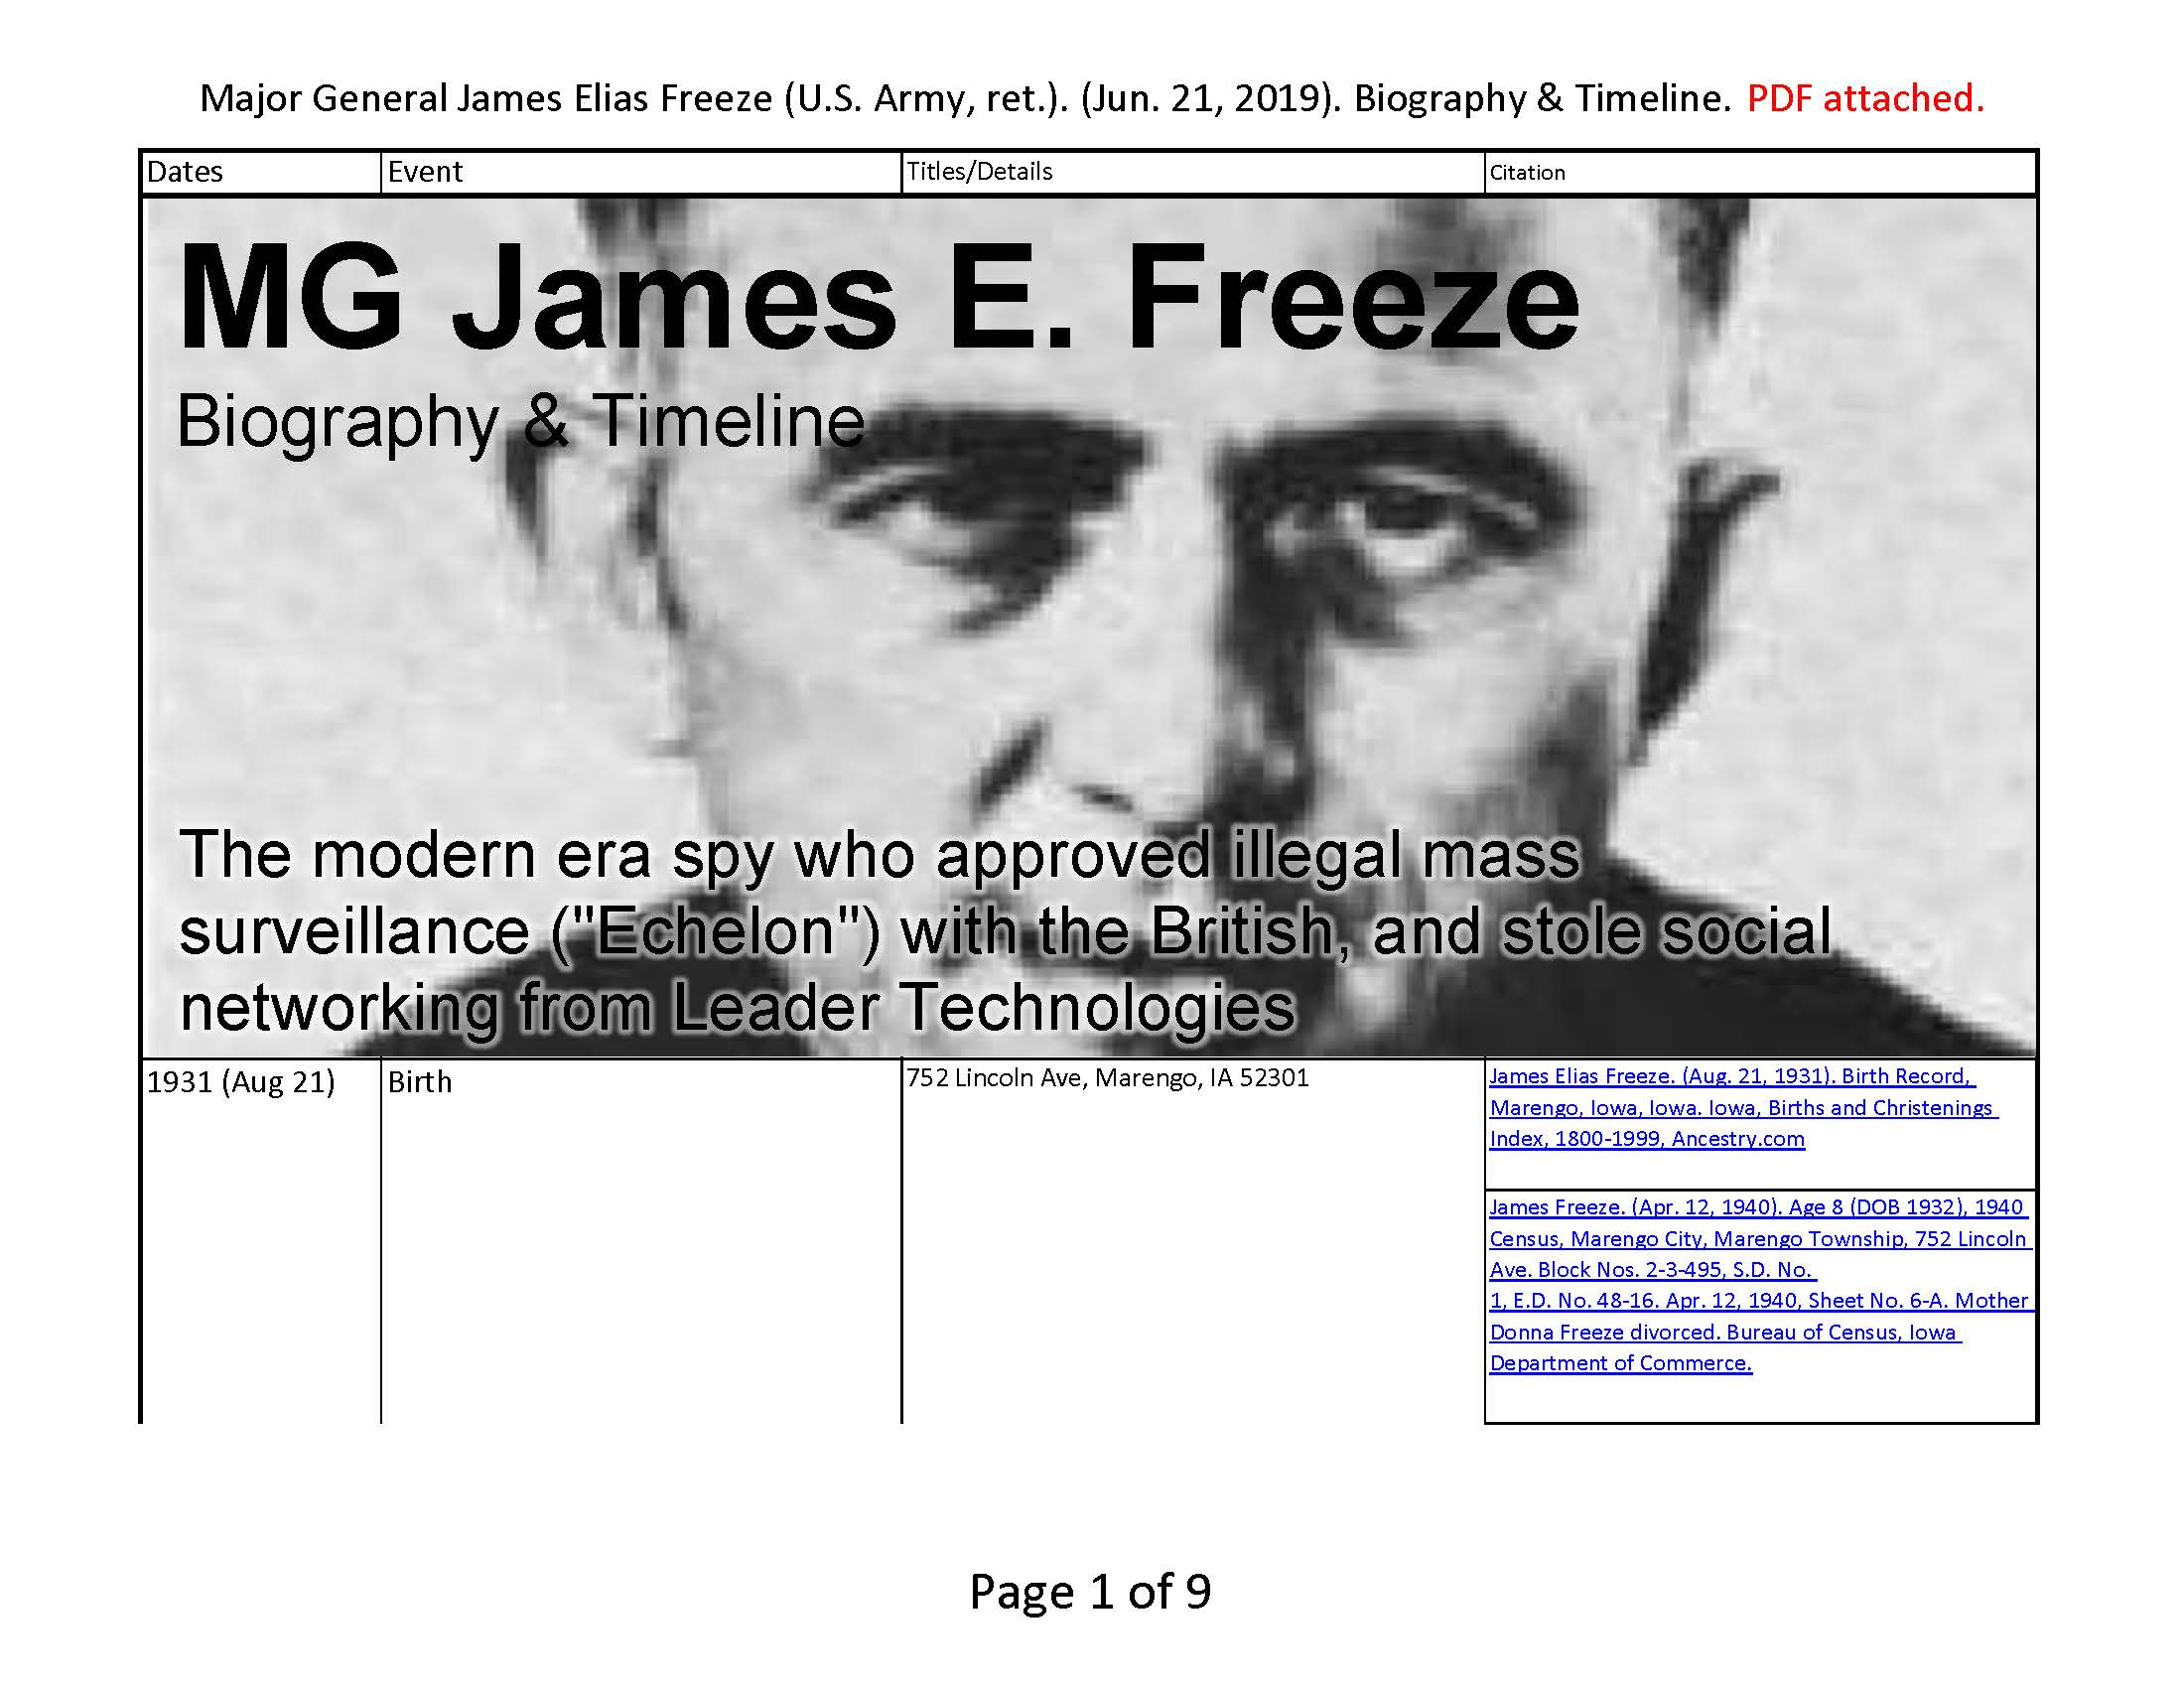 Major General James E. Freeze. (Jun. 21, 2019). Biography & Timeline.